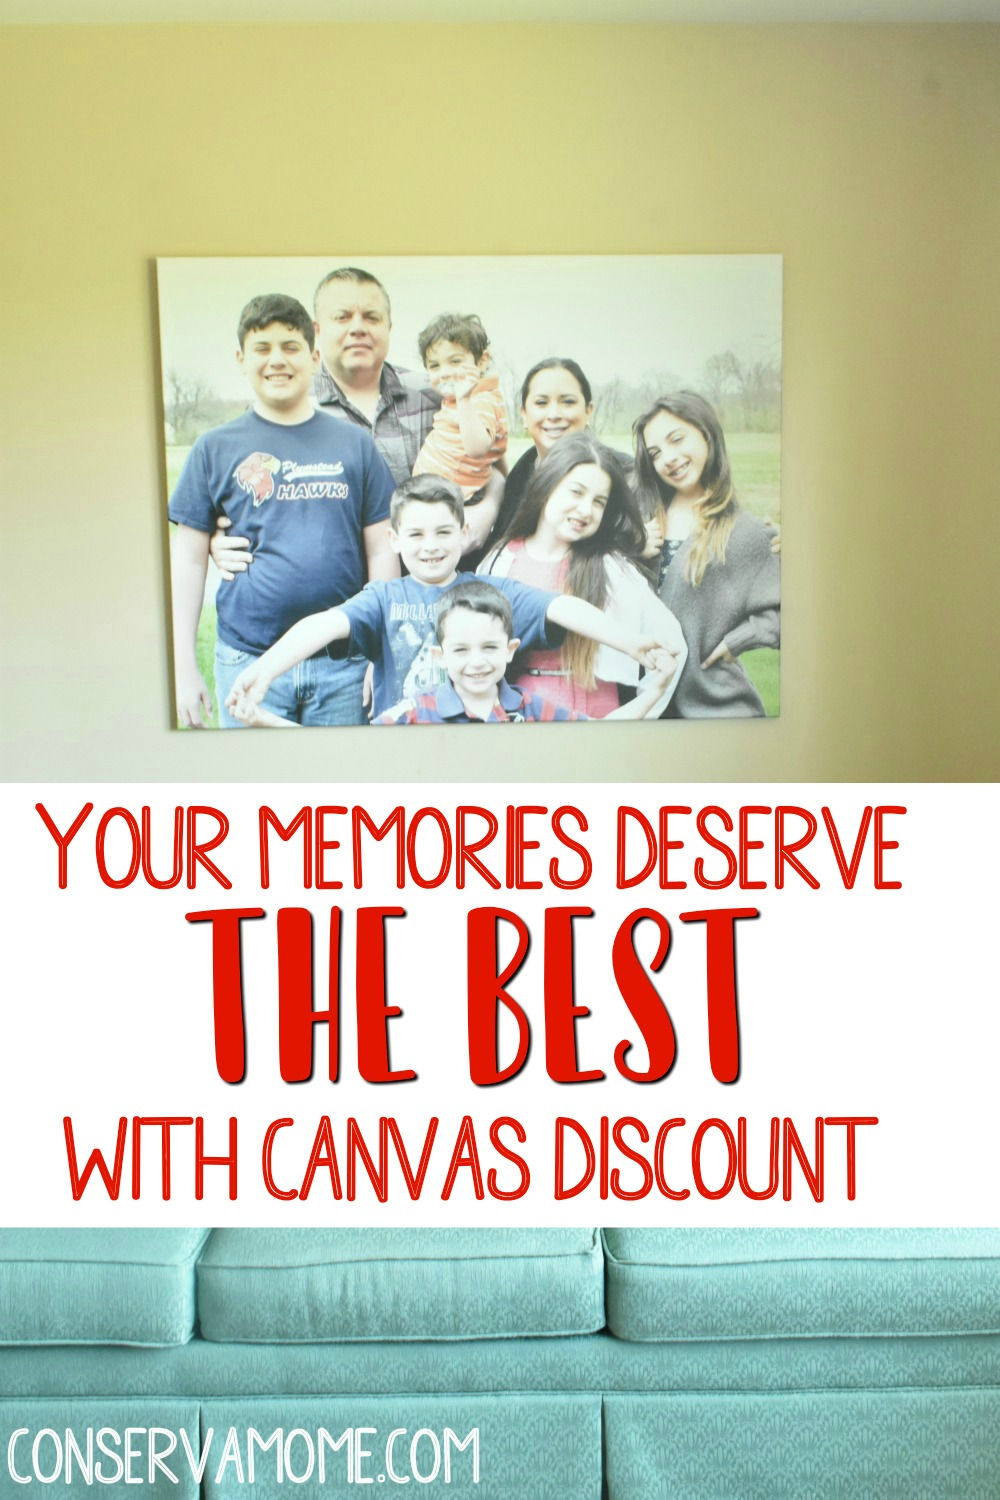 Your memories deserve the best with canvas discount